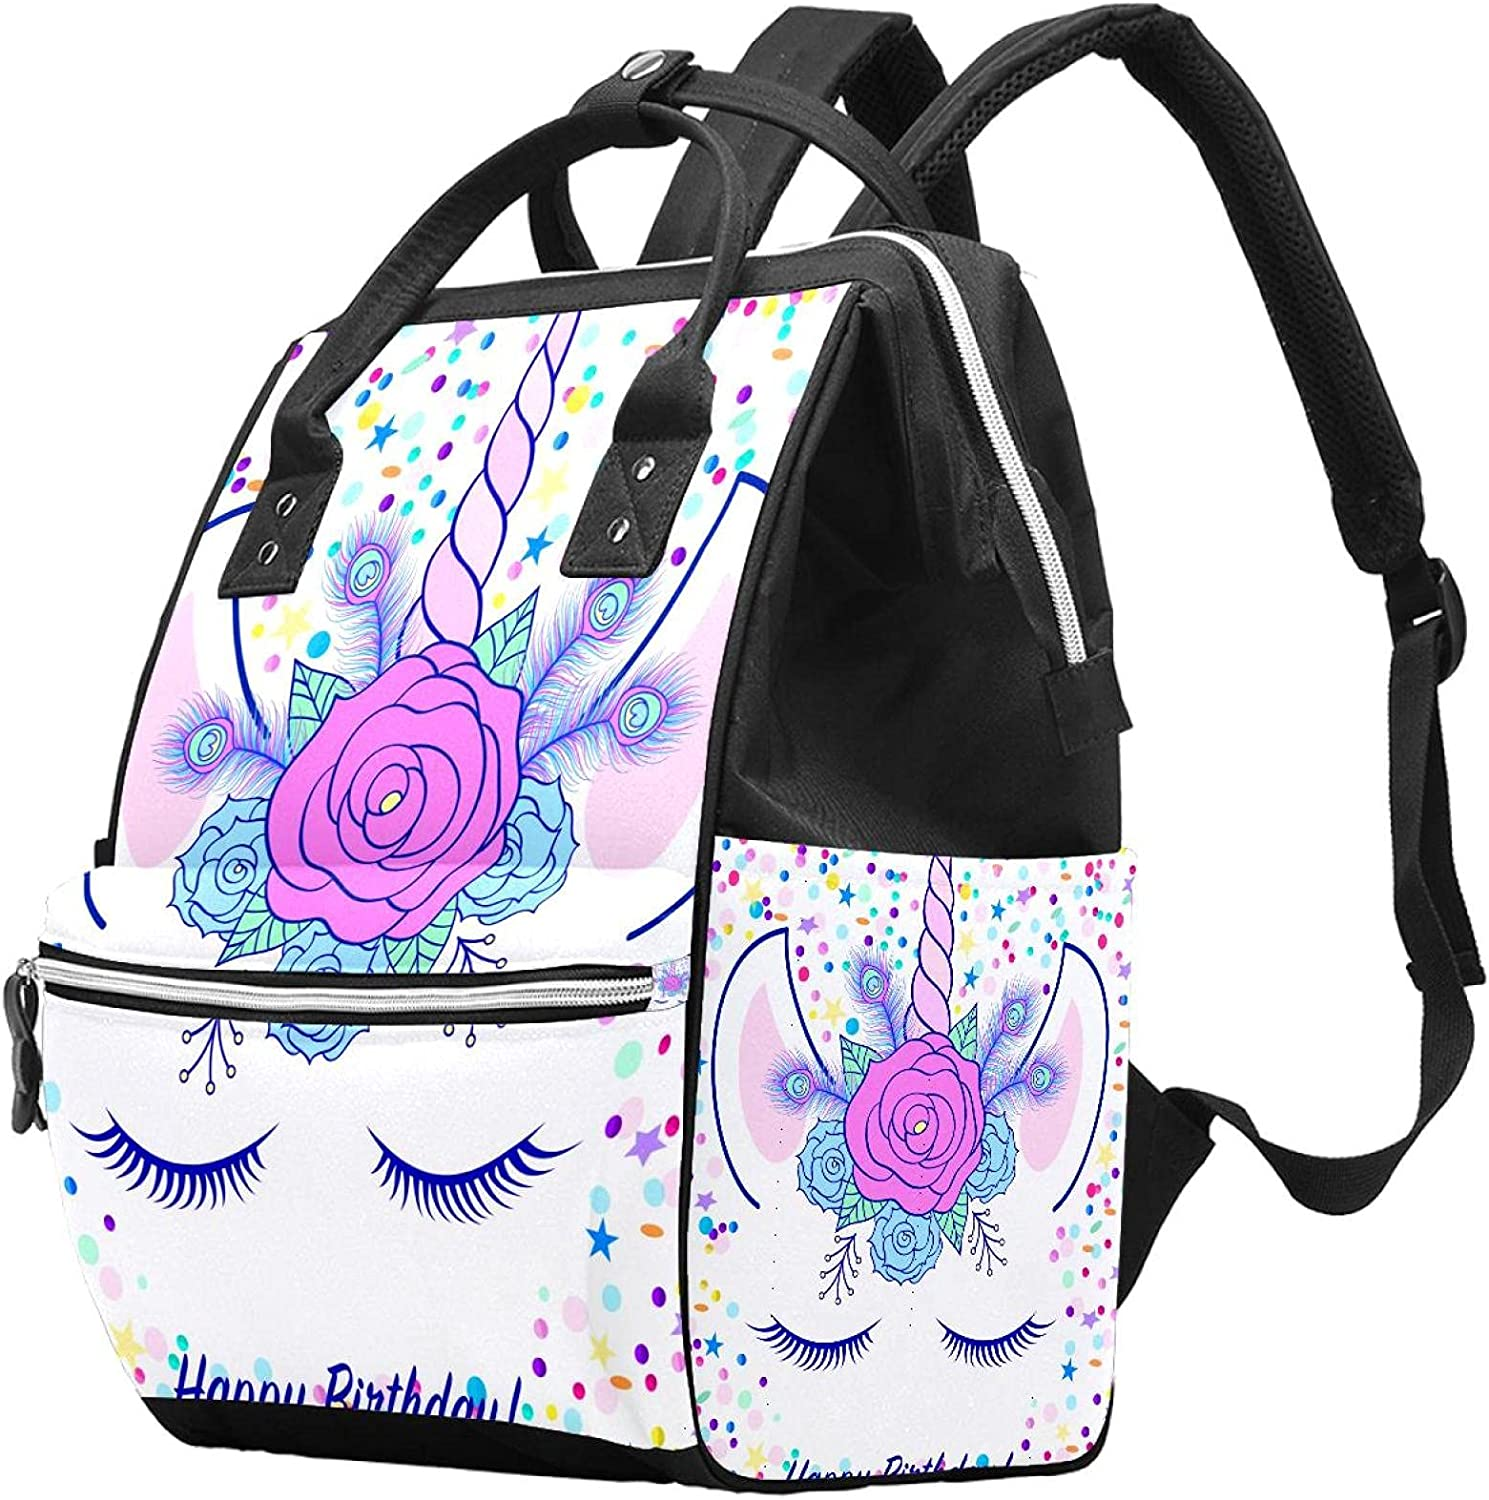 Backpacks Diaper Bag Laptop Notebook Hiking Houston Mall Travel Dayp Shipping included Rucksack